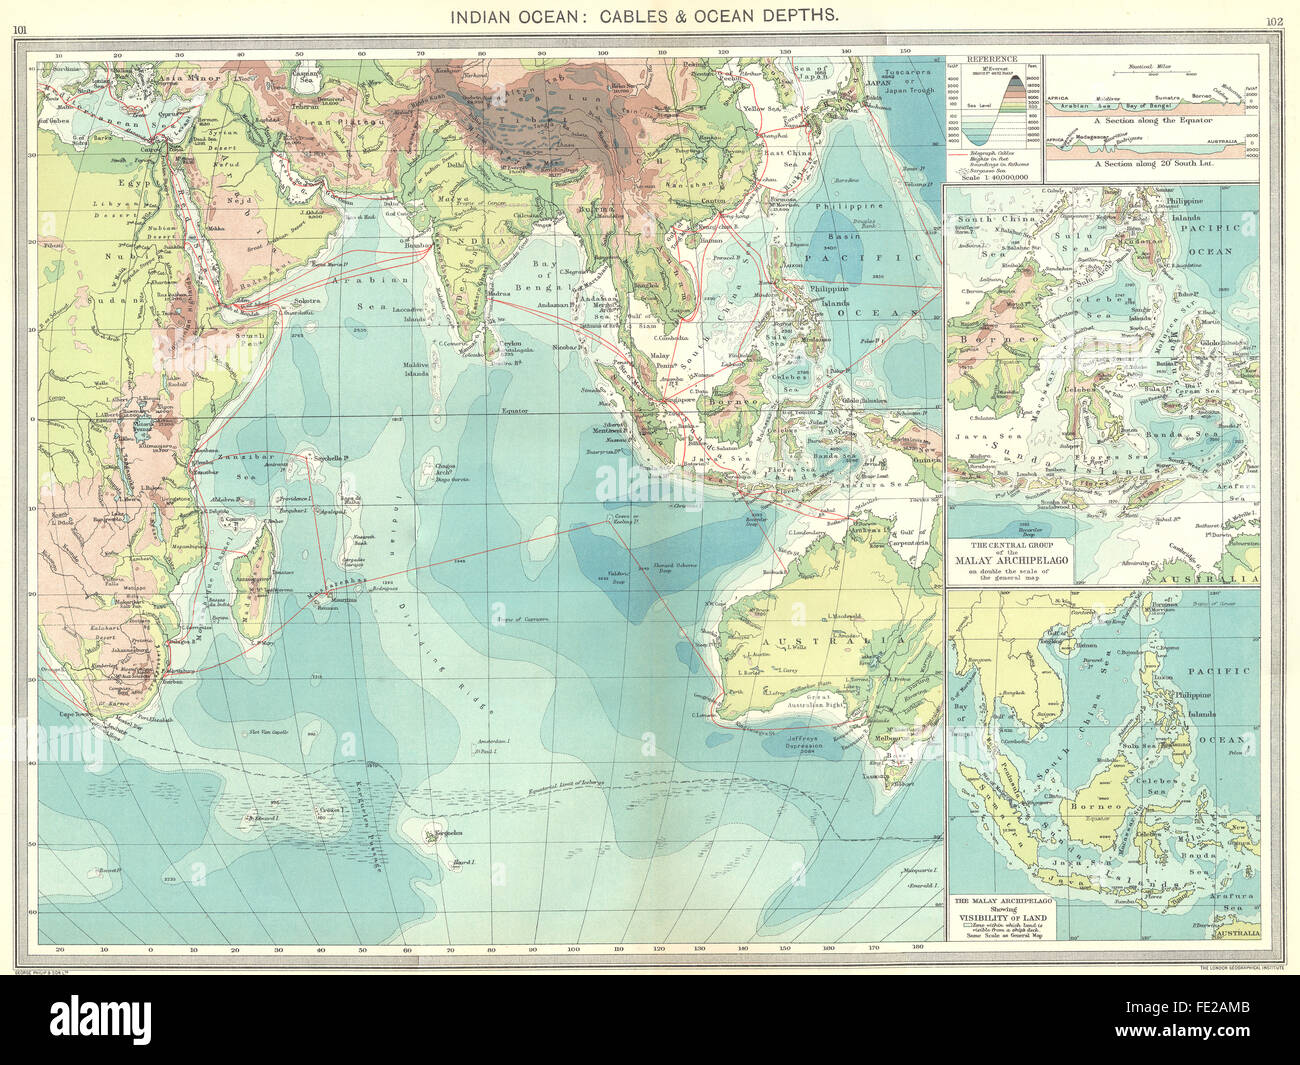 INDIAN OCEAN Cables Depths Malay Archipelago Antique Map - Ocean maps with depths